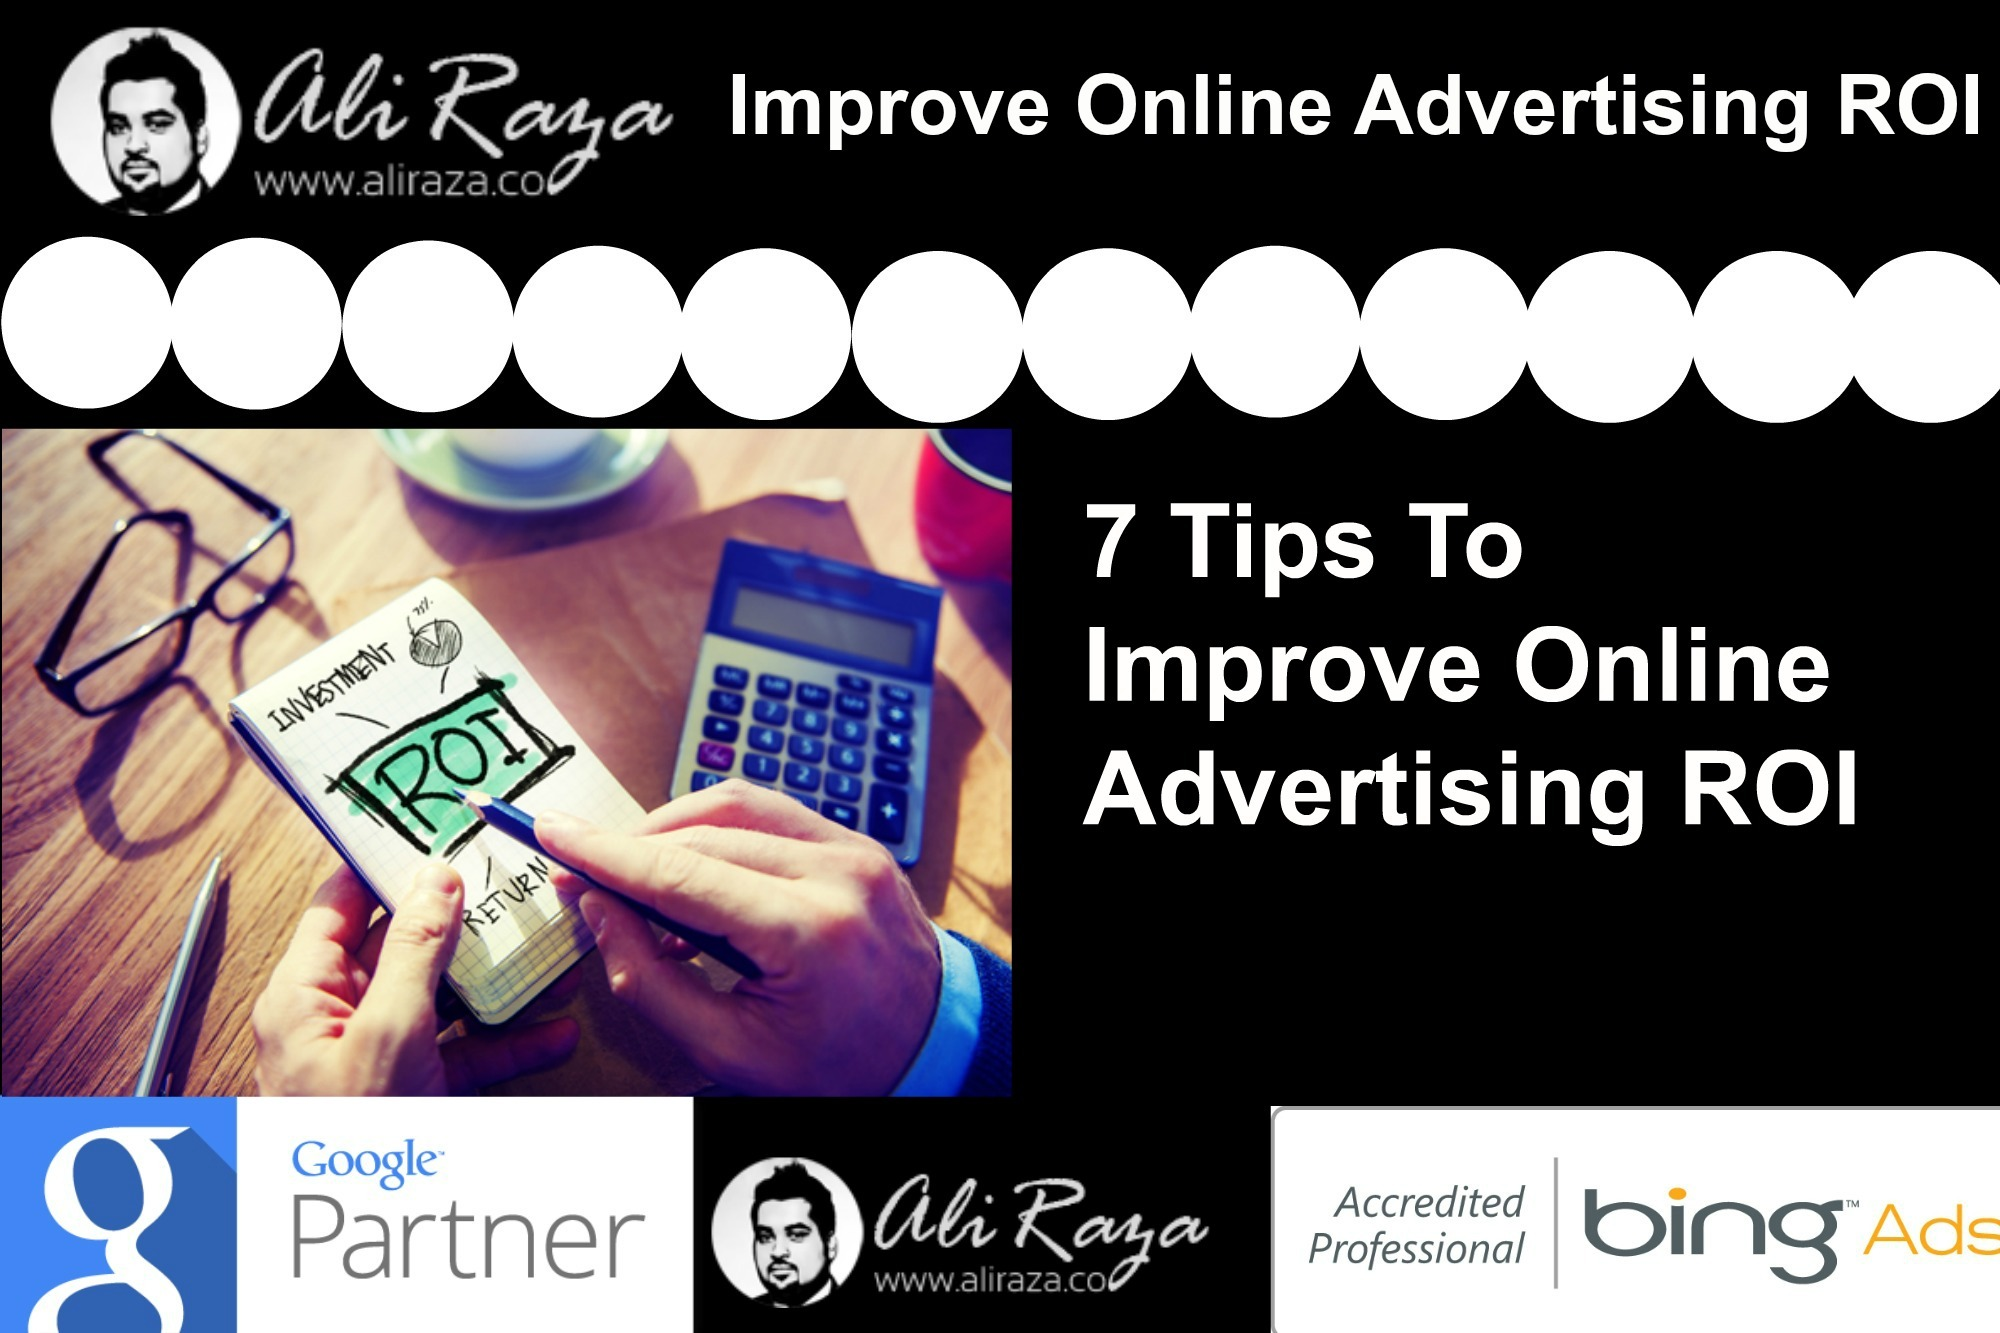 7 tips to improve online advertising ROI